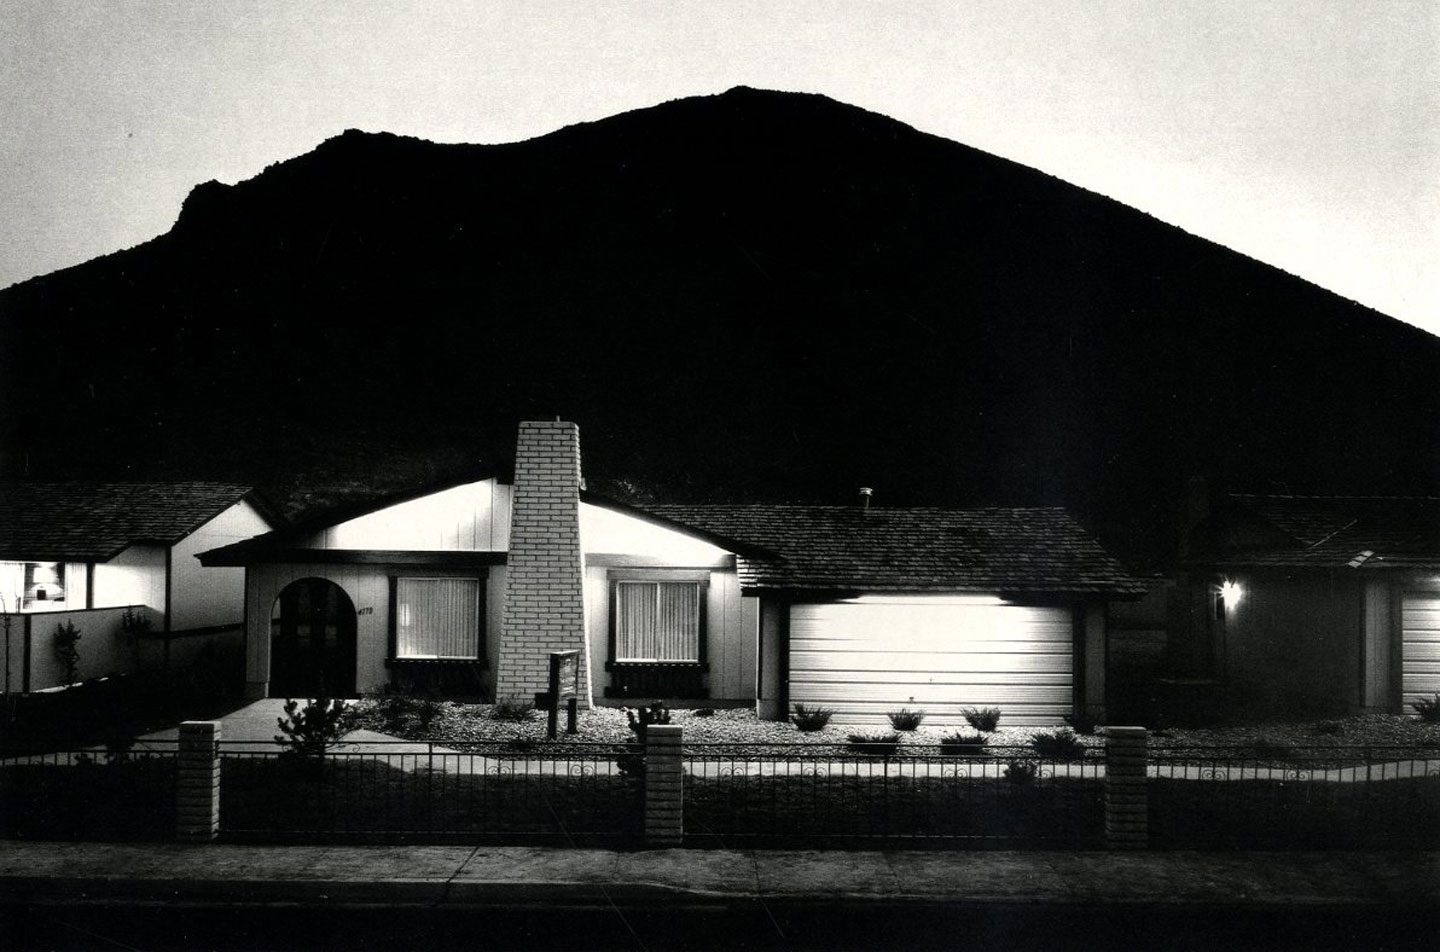 Lewis Baltz: Park City (First Edition) [SIGNED] (New condition in publisher's shrink-wrap, slit open for signature) -- INCLUDES a copy of Lewis Baltz: Nevada (First Edition) [SIGNED]